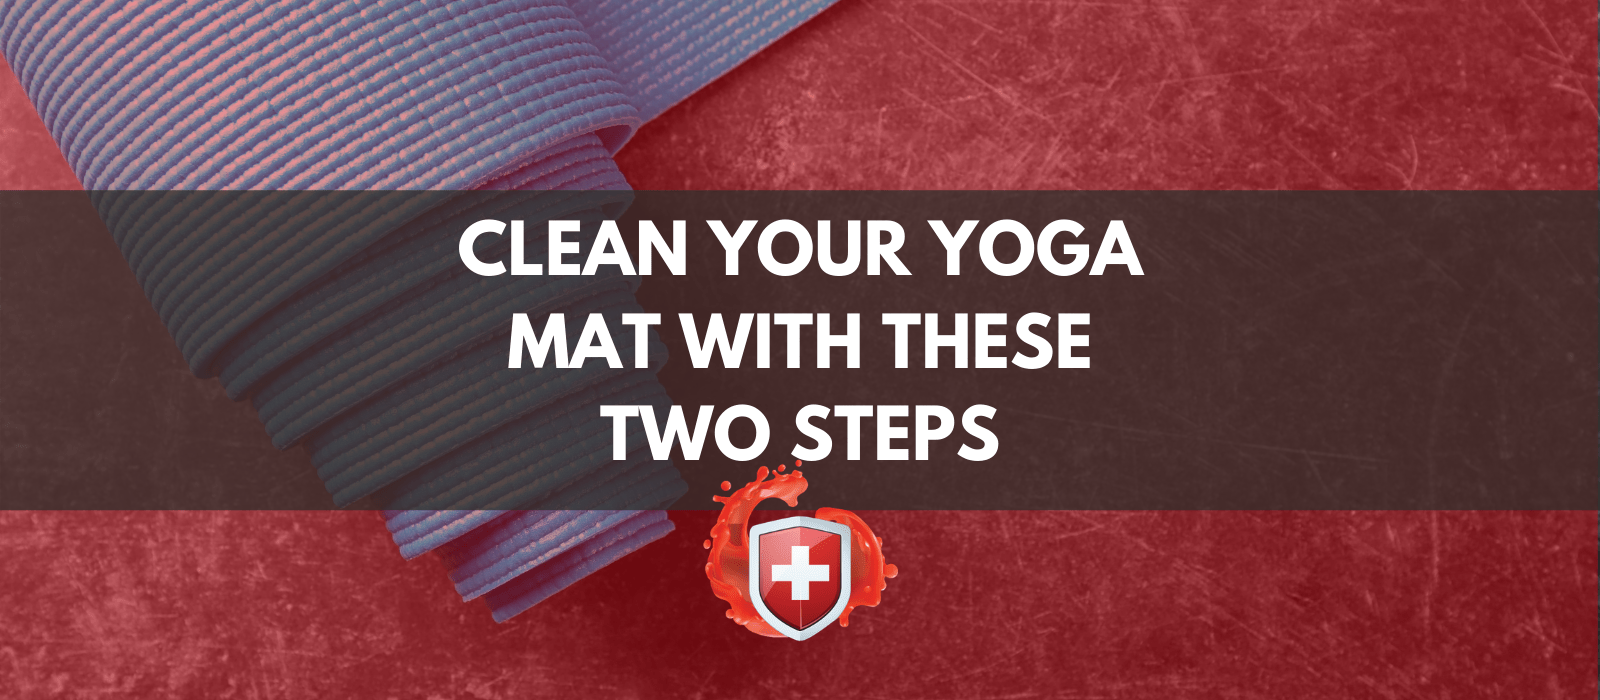 Clean Your Yoga Mat With These Two Steps